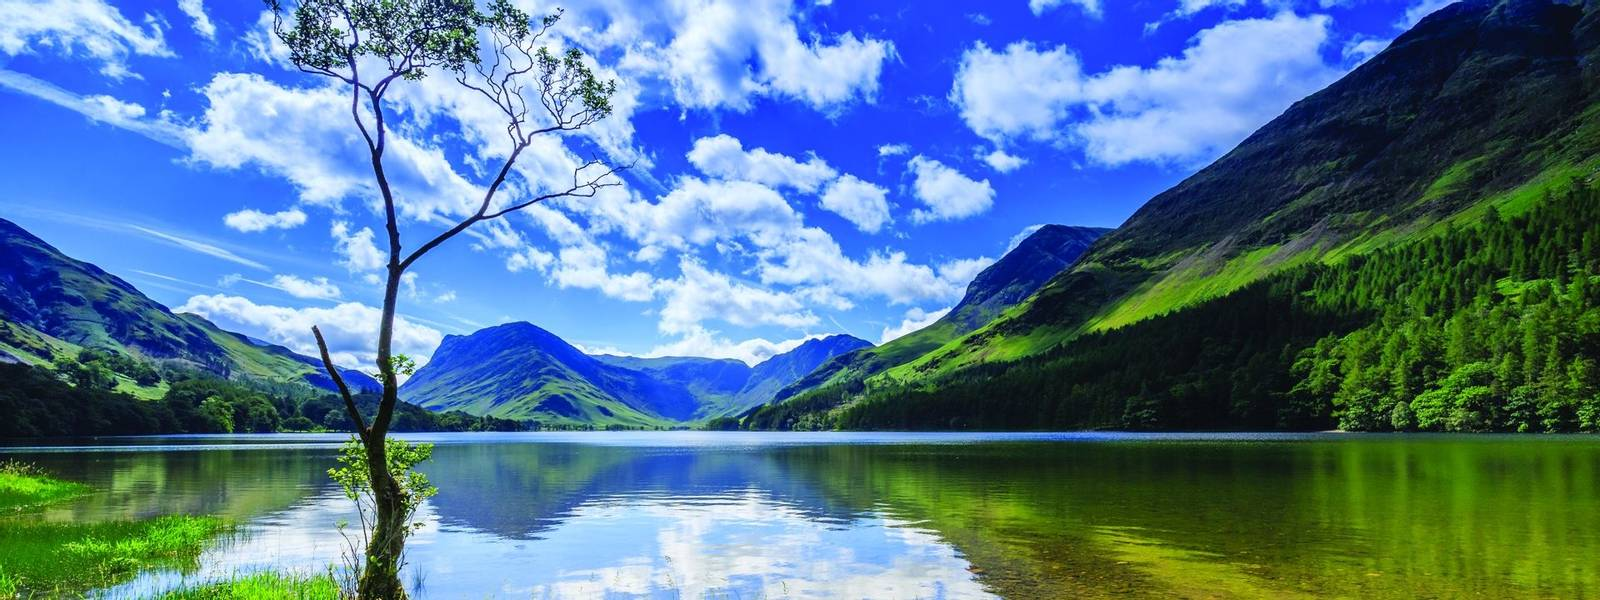 Lone tree at Buttermere, The Lake District, Cumbria, England